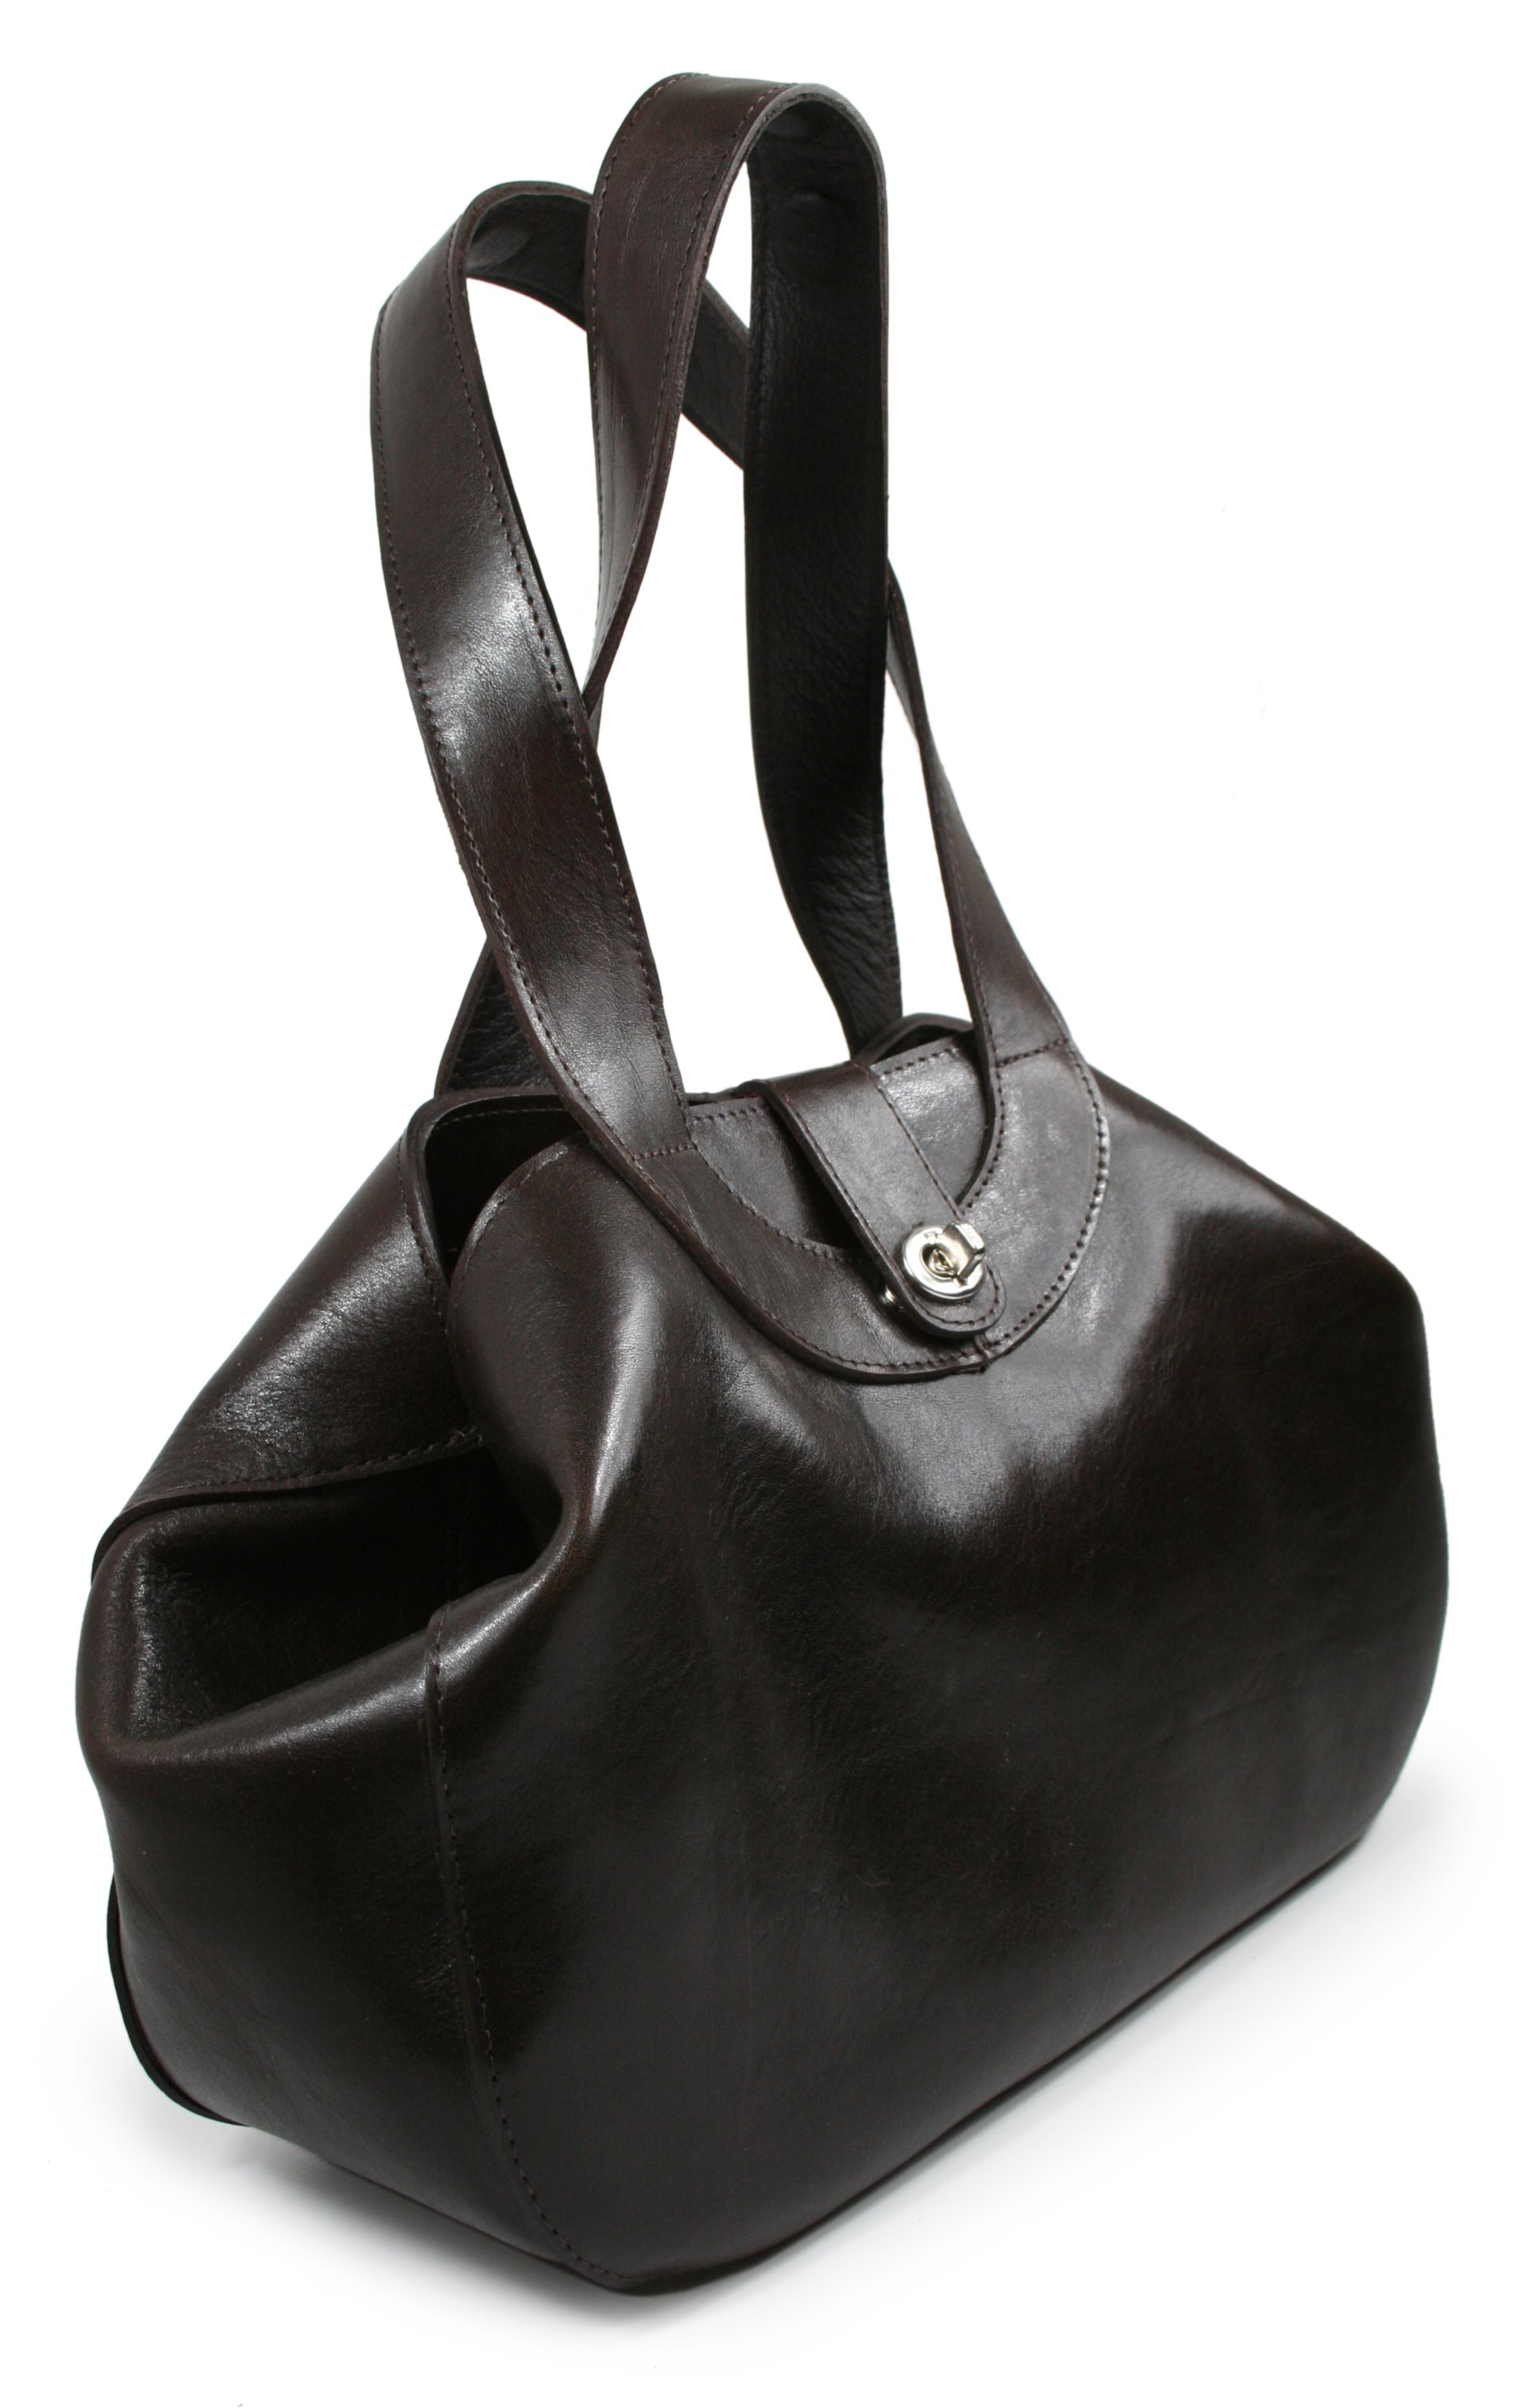 Onibury Bag with Turn Catch